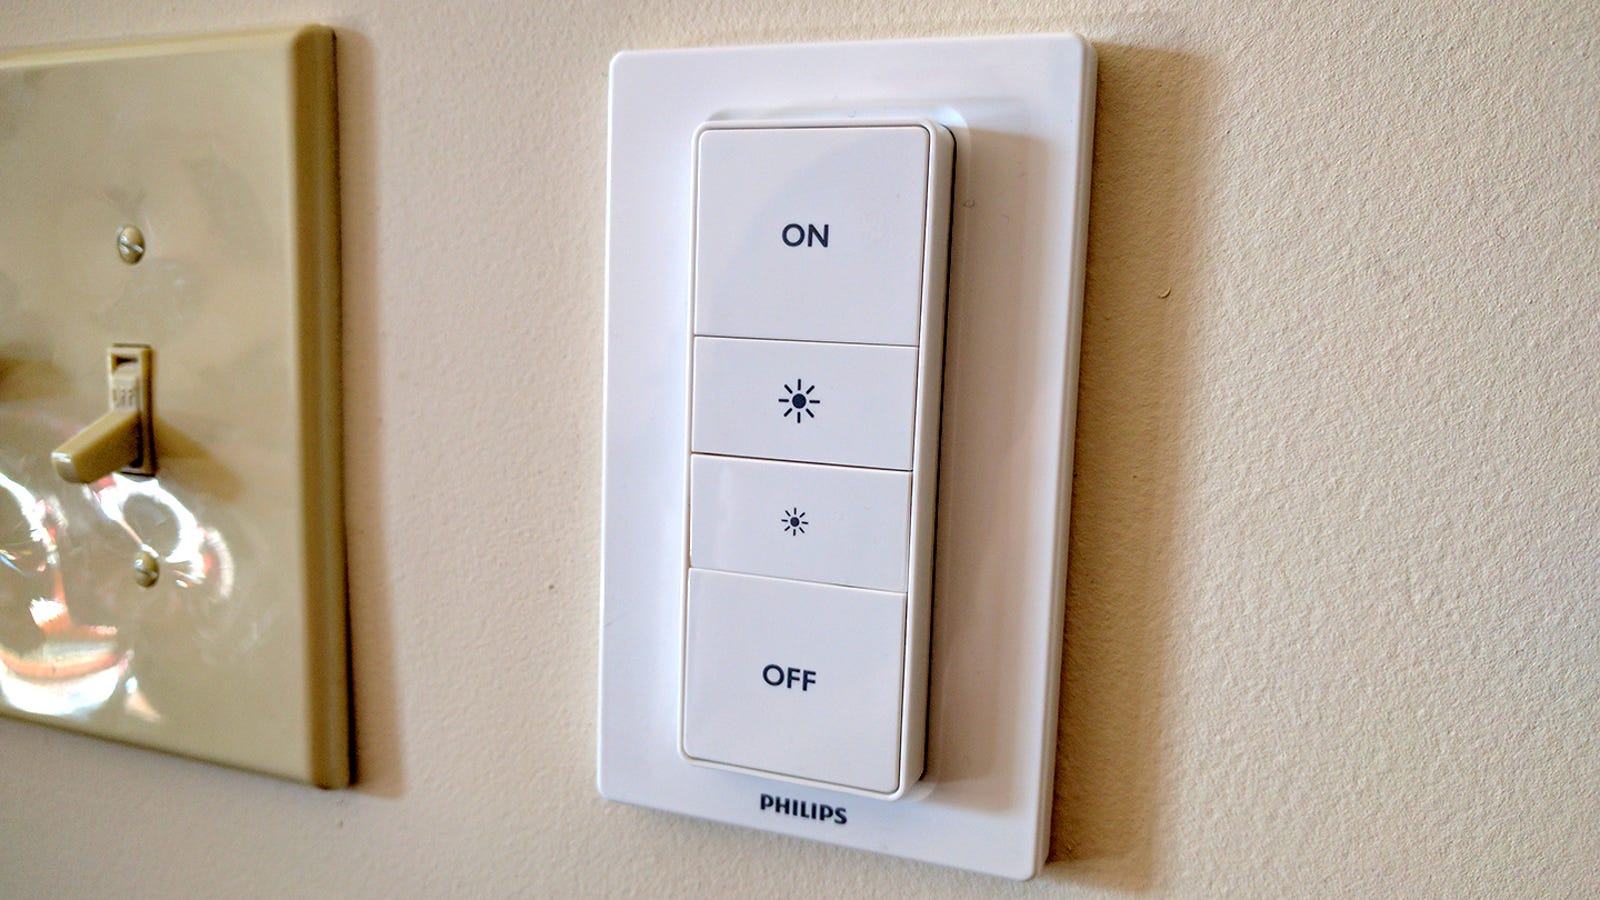 The Philips Hue Dimmer Kit Is Landlord Friendly Adds Dimmable Rewire A Switch To Control An Overhead Fixture Lights Any Home